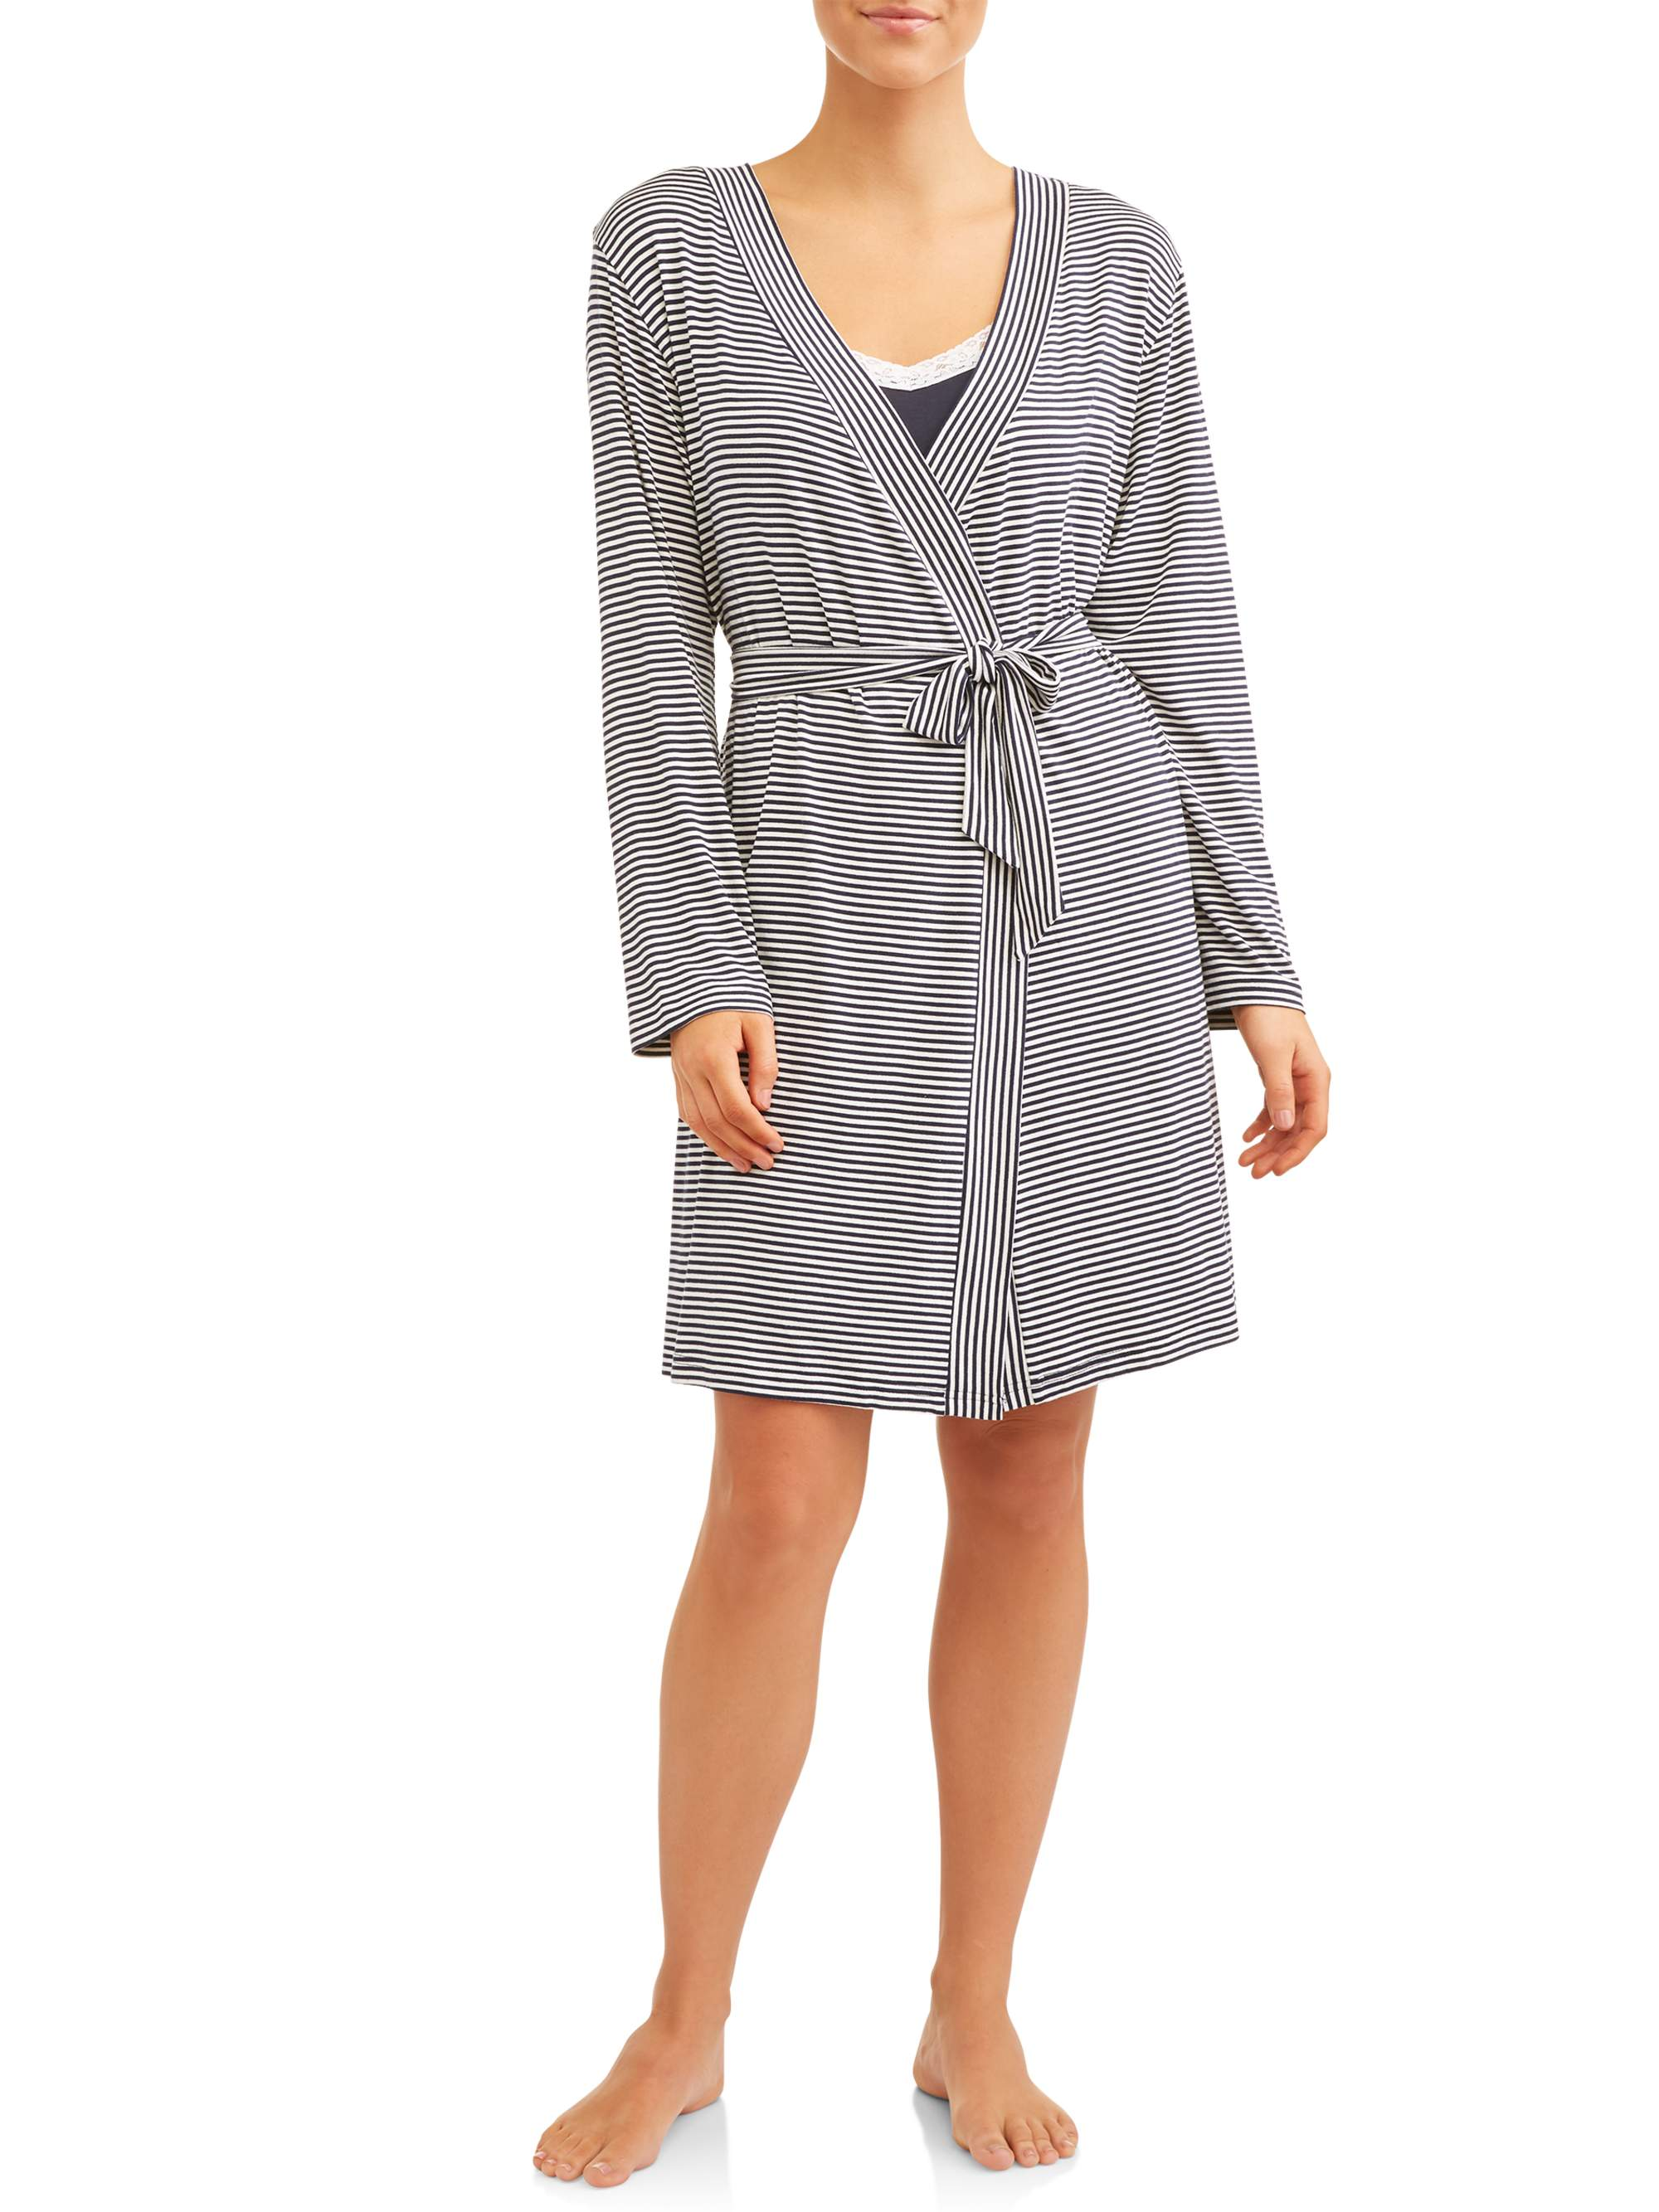 Nurture by Lamaze Maternity 2-Piece Nursing Chemise and Robe Set - Available in Plus Size